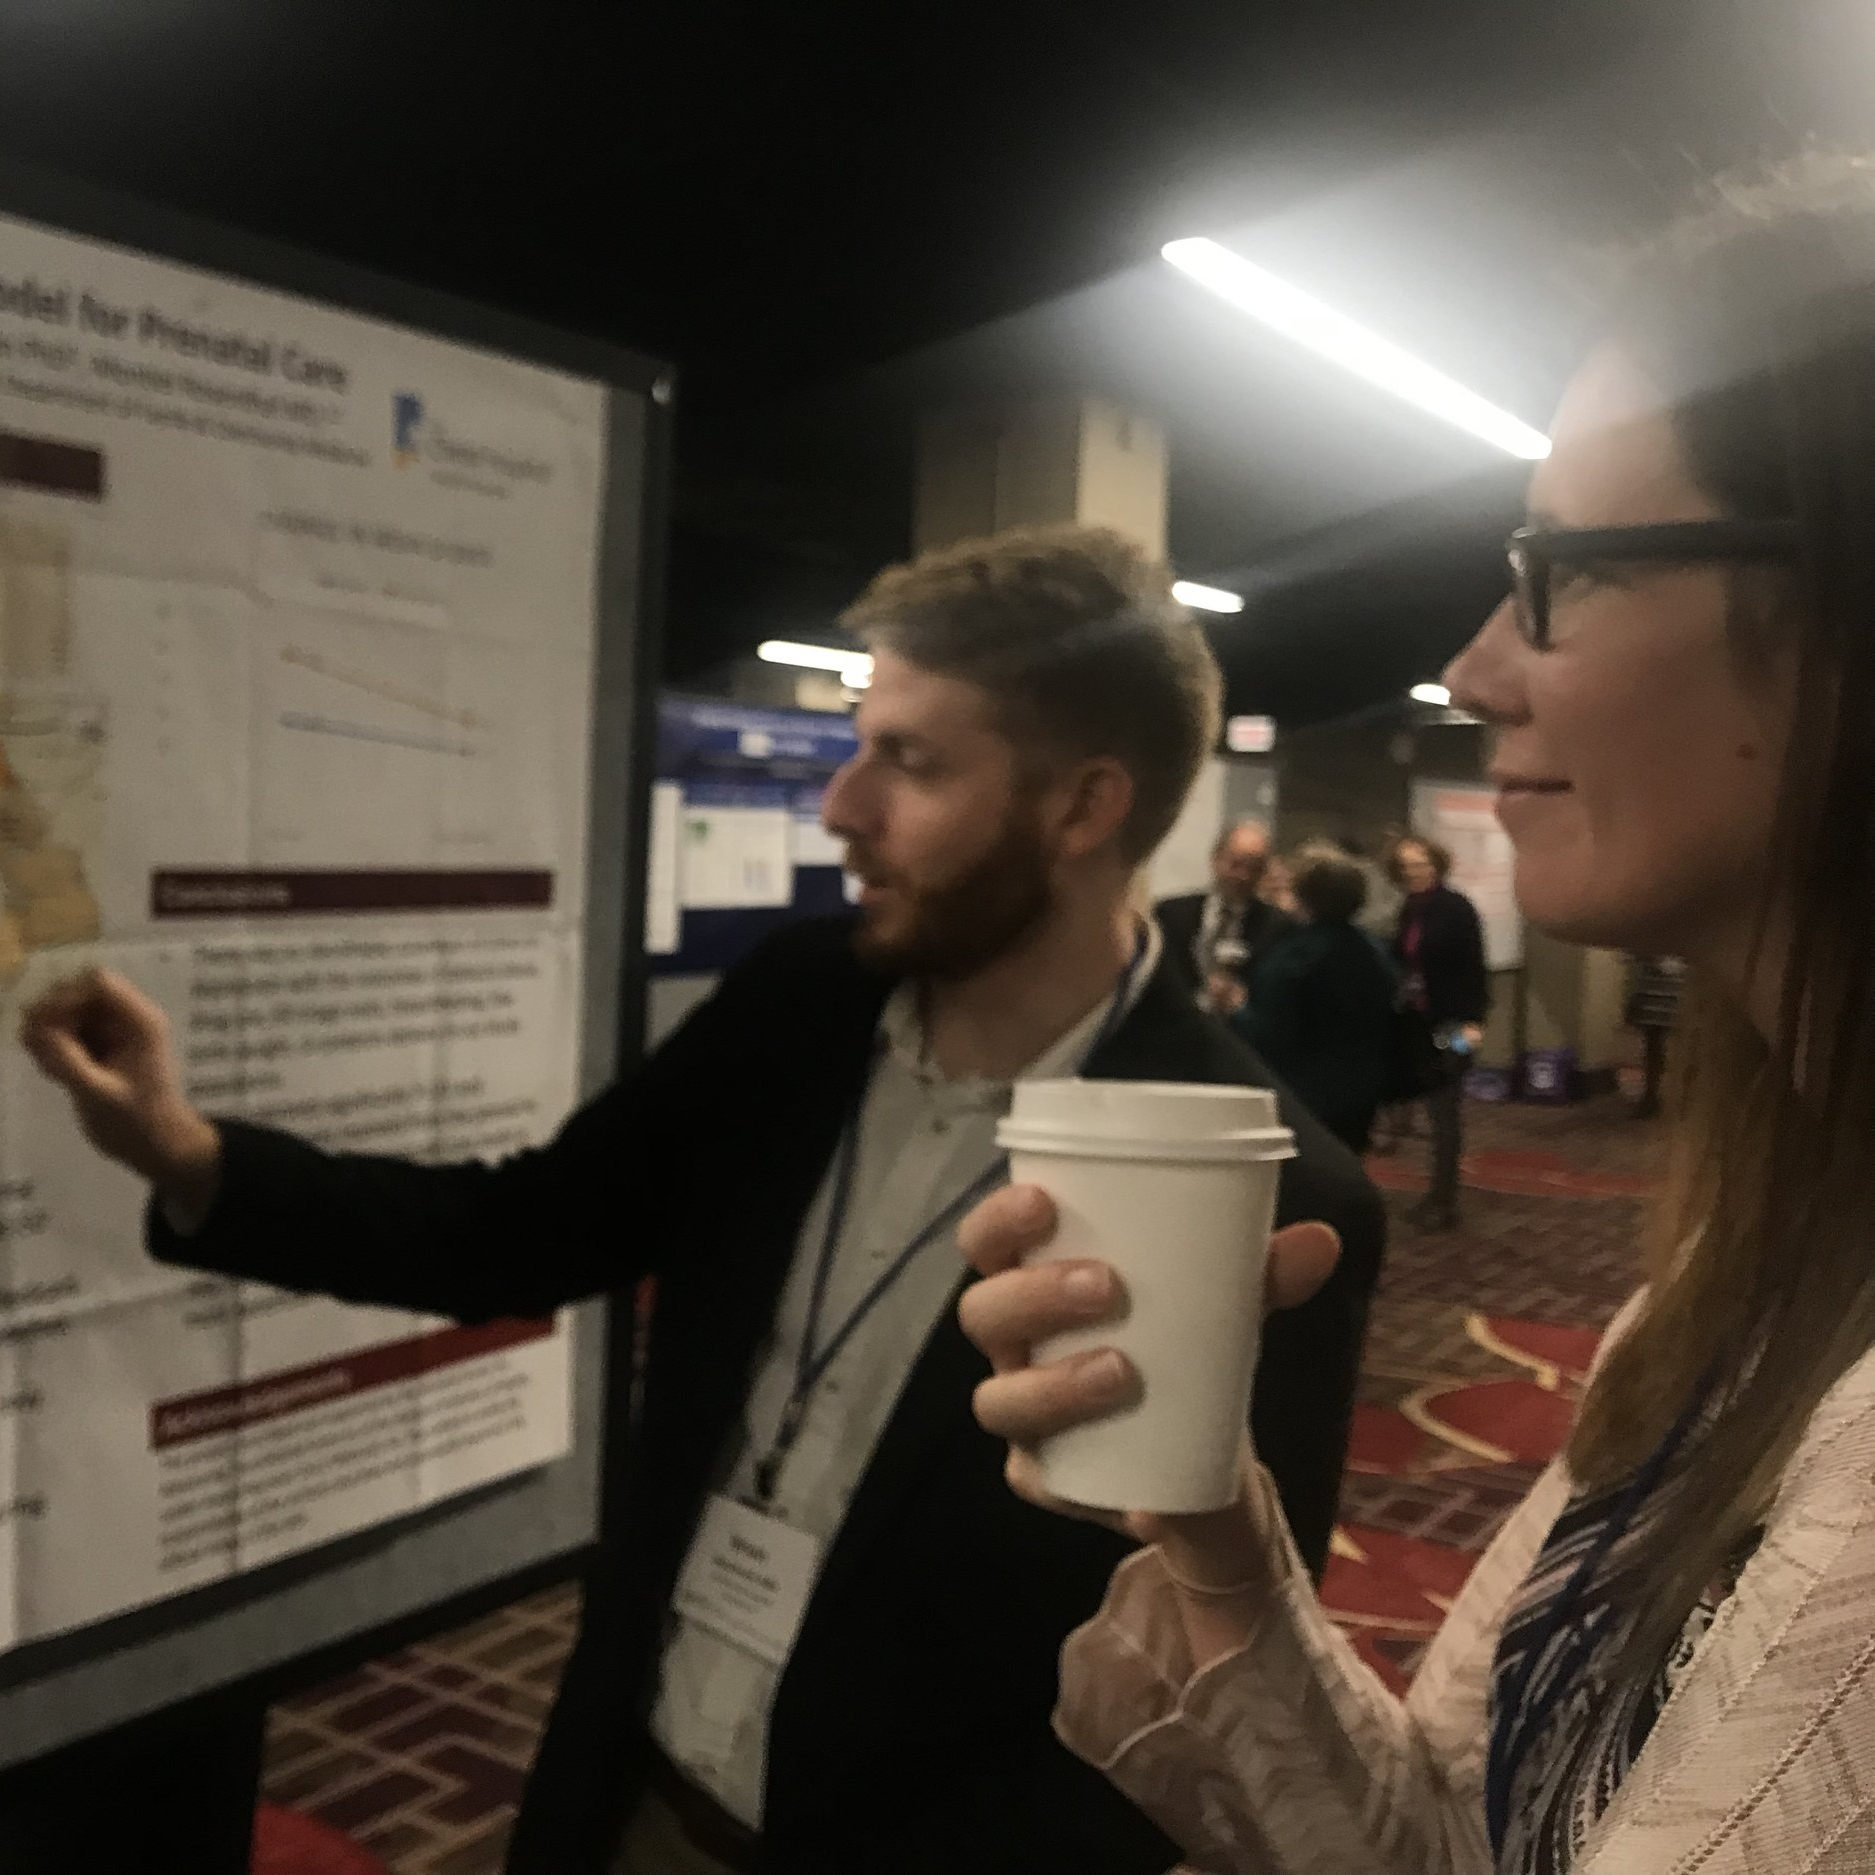 This year at the NAPCRG conference, Dr. Brian Bouchard and Dr. Megan Rich discuss depression scores for peri-natal populations.